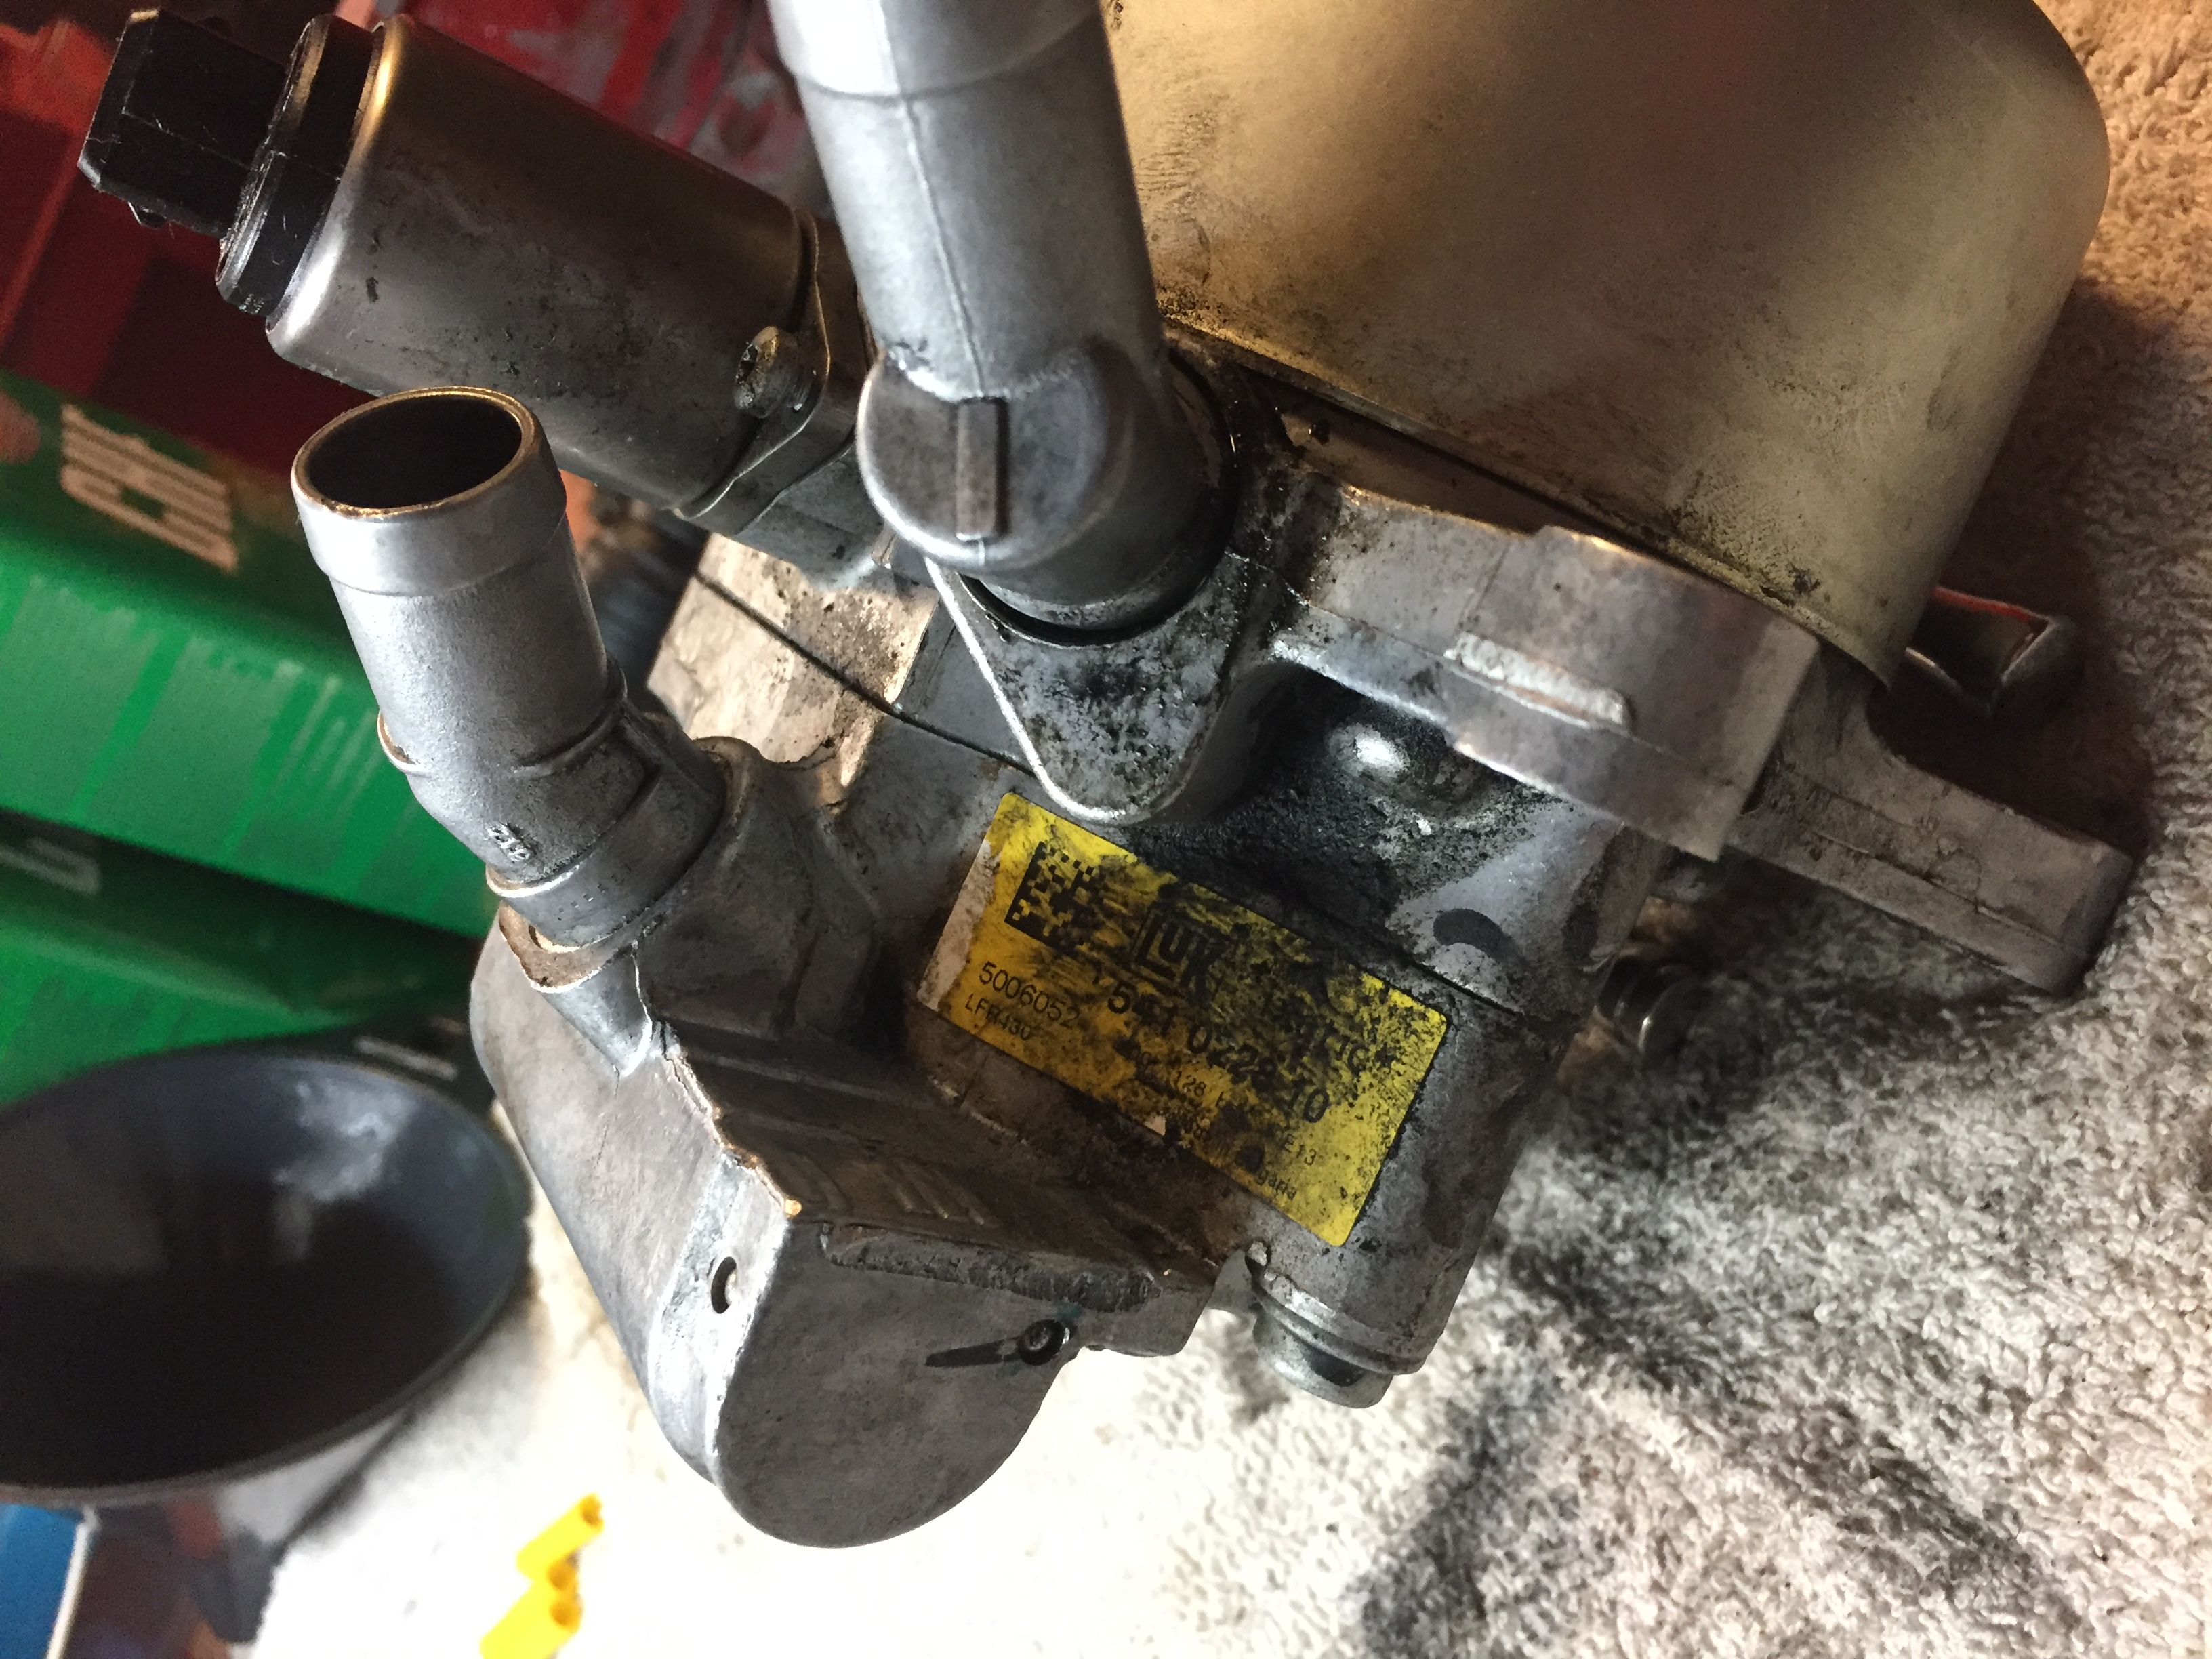 I have a 2003 sl500 which blew all the hydraulic fluid out on the